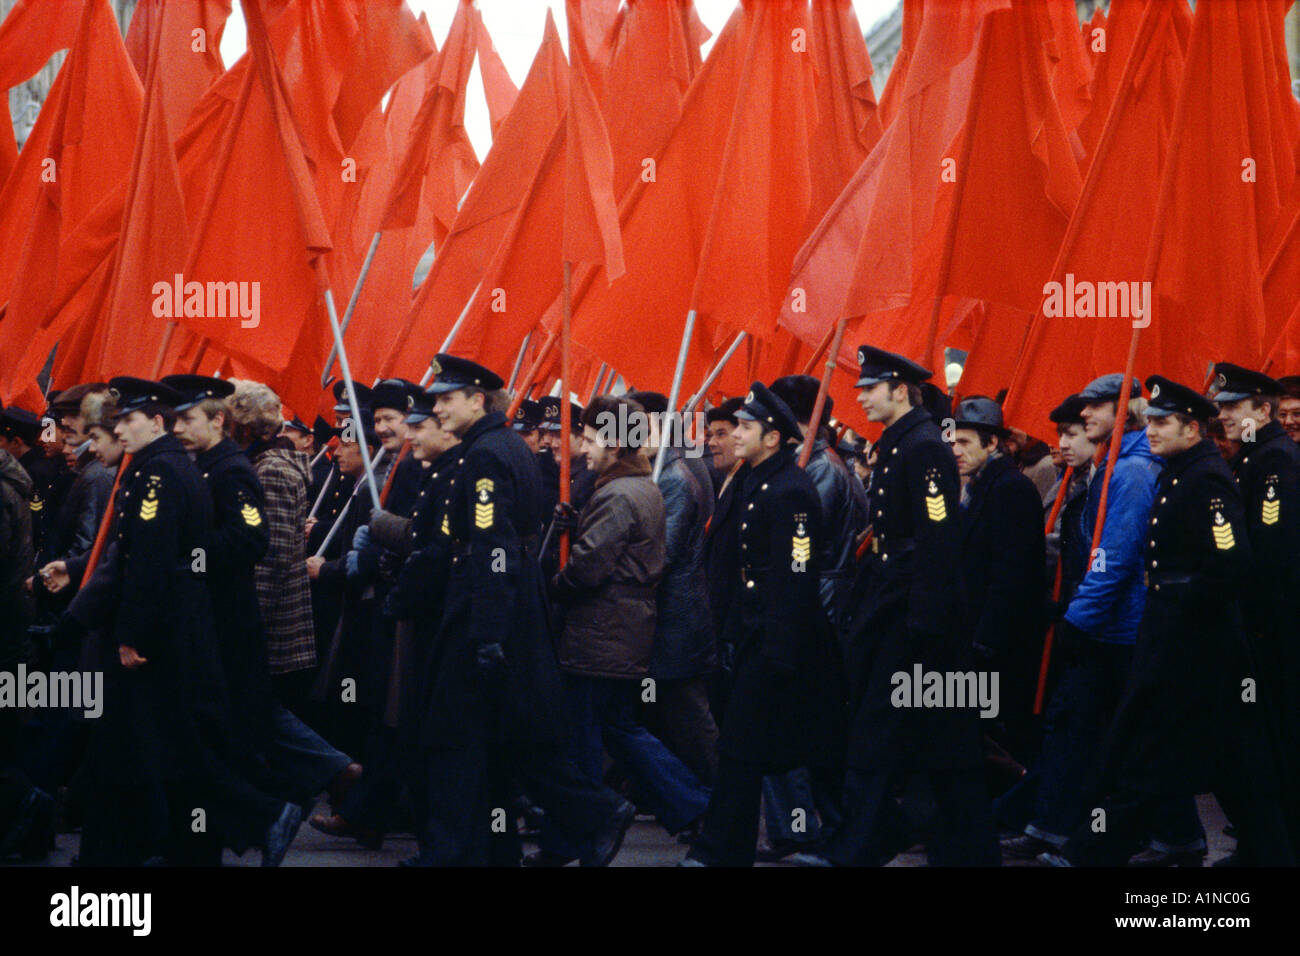 Parade celebrating the October Revolution, St Petersburg, Russia - Stock Image